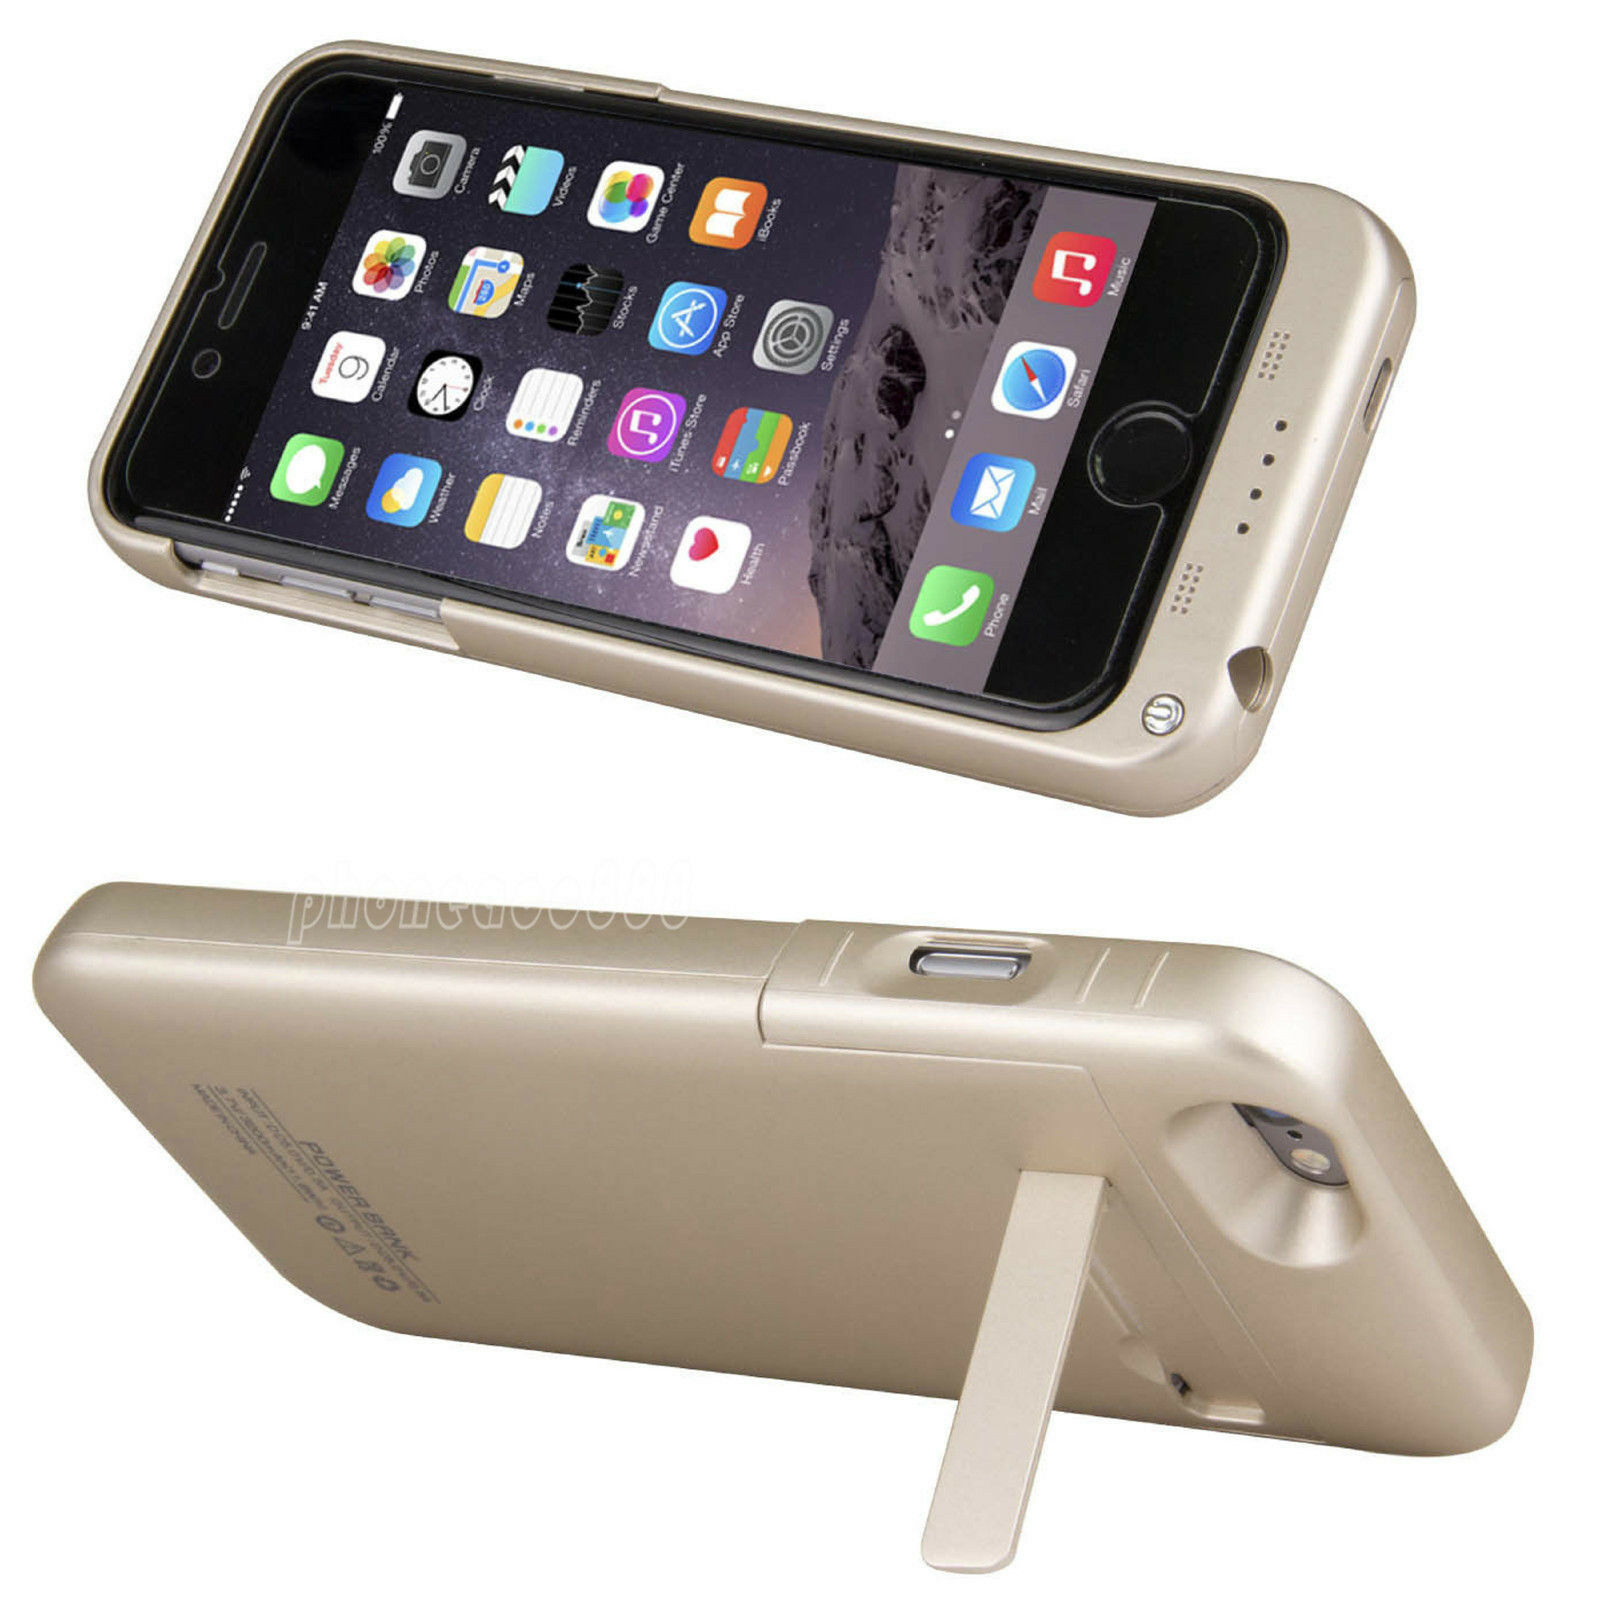 External Power Bank Backup Charger Battery Case Cover For Apple iPhone 6 6S Plus | eBay